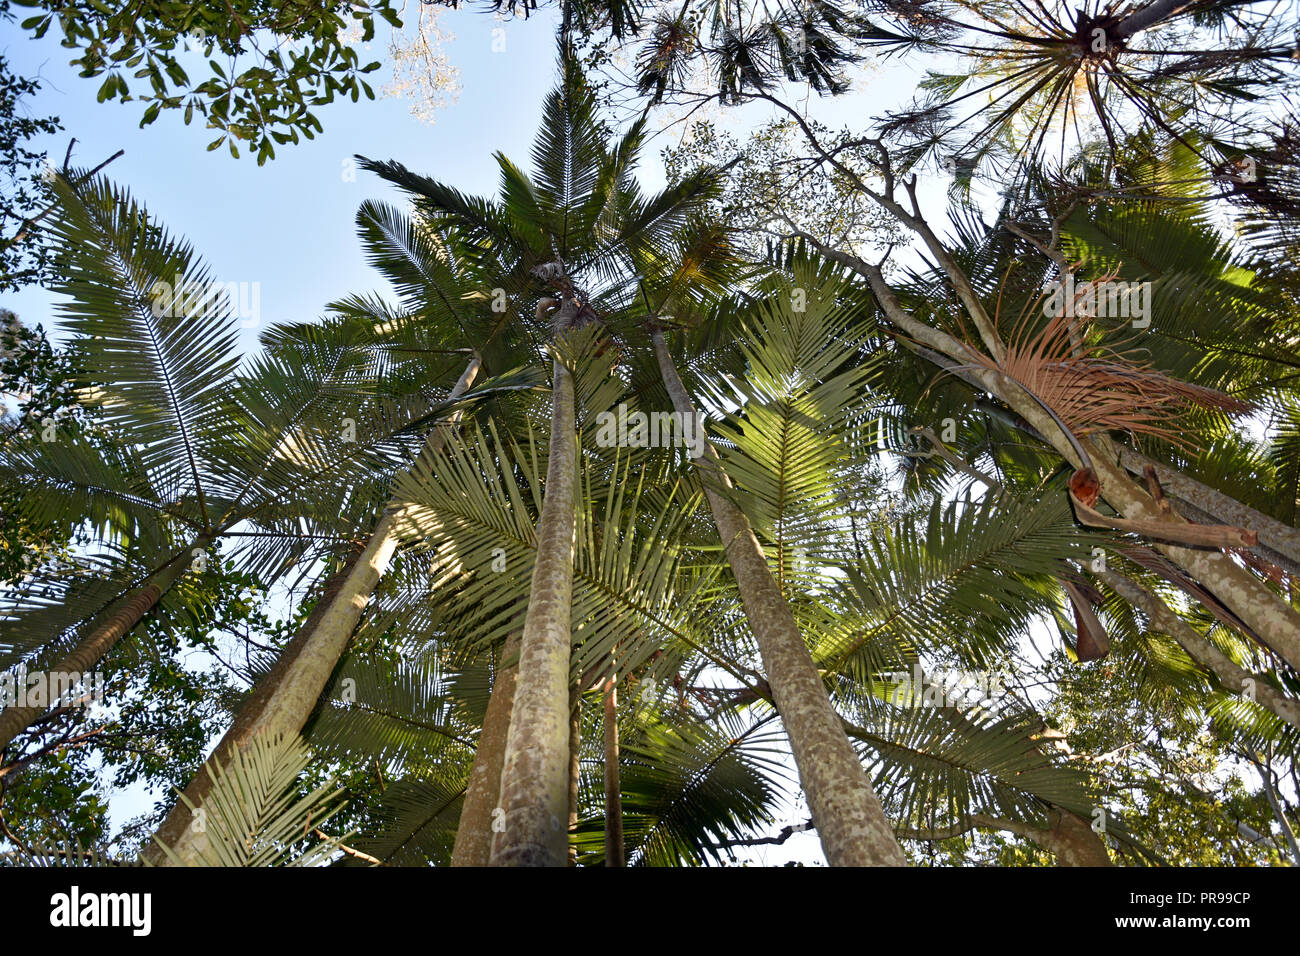 Australian Native Trees High Resolution Stock Photography And Images Alamy